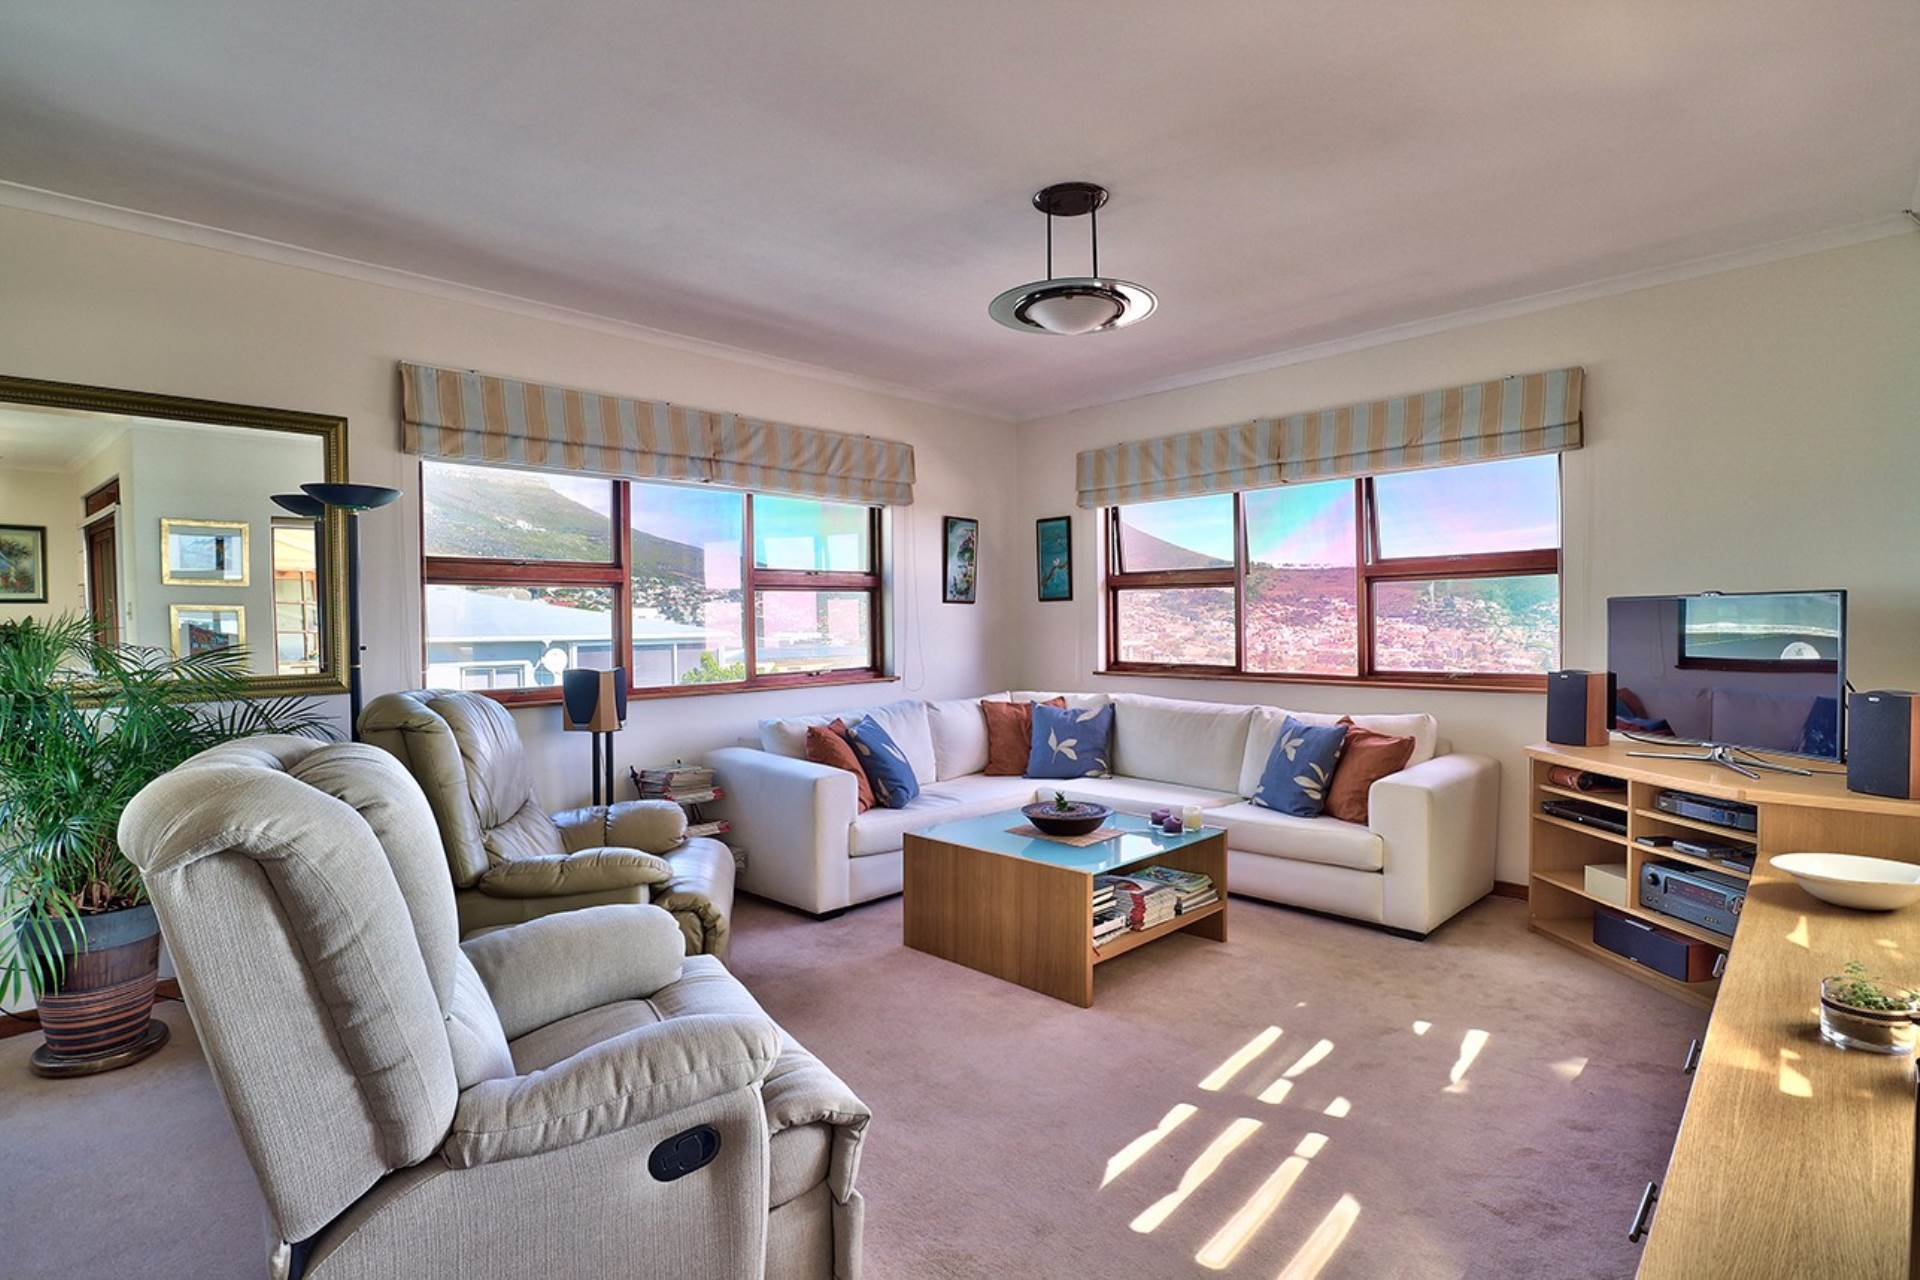 Vredehoek property for sale. Ref No: 13534483. Picture no 7